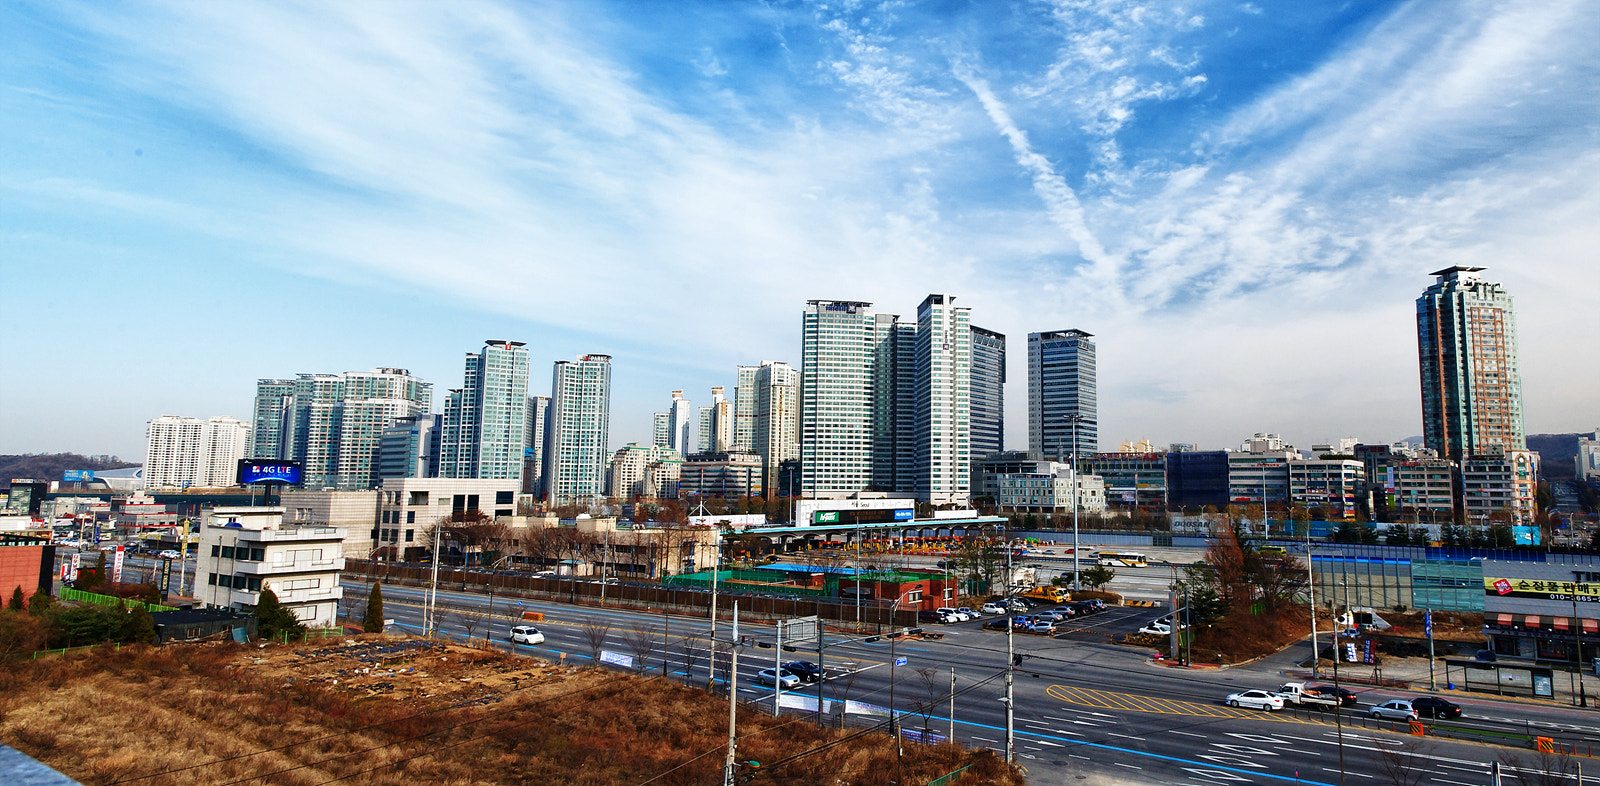 Photograph Complex Town in Korea by Youngsuk Rho on 500px